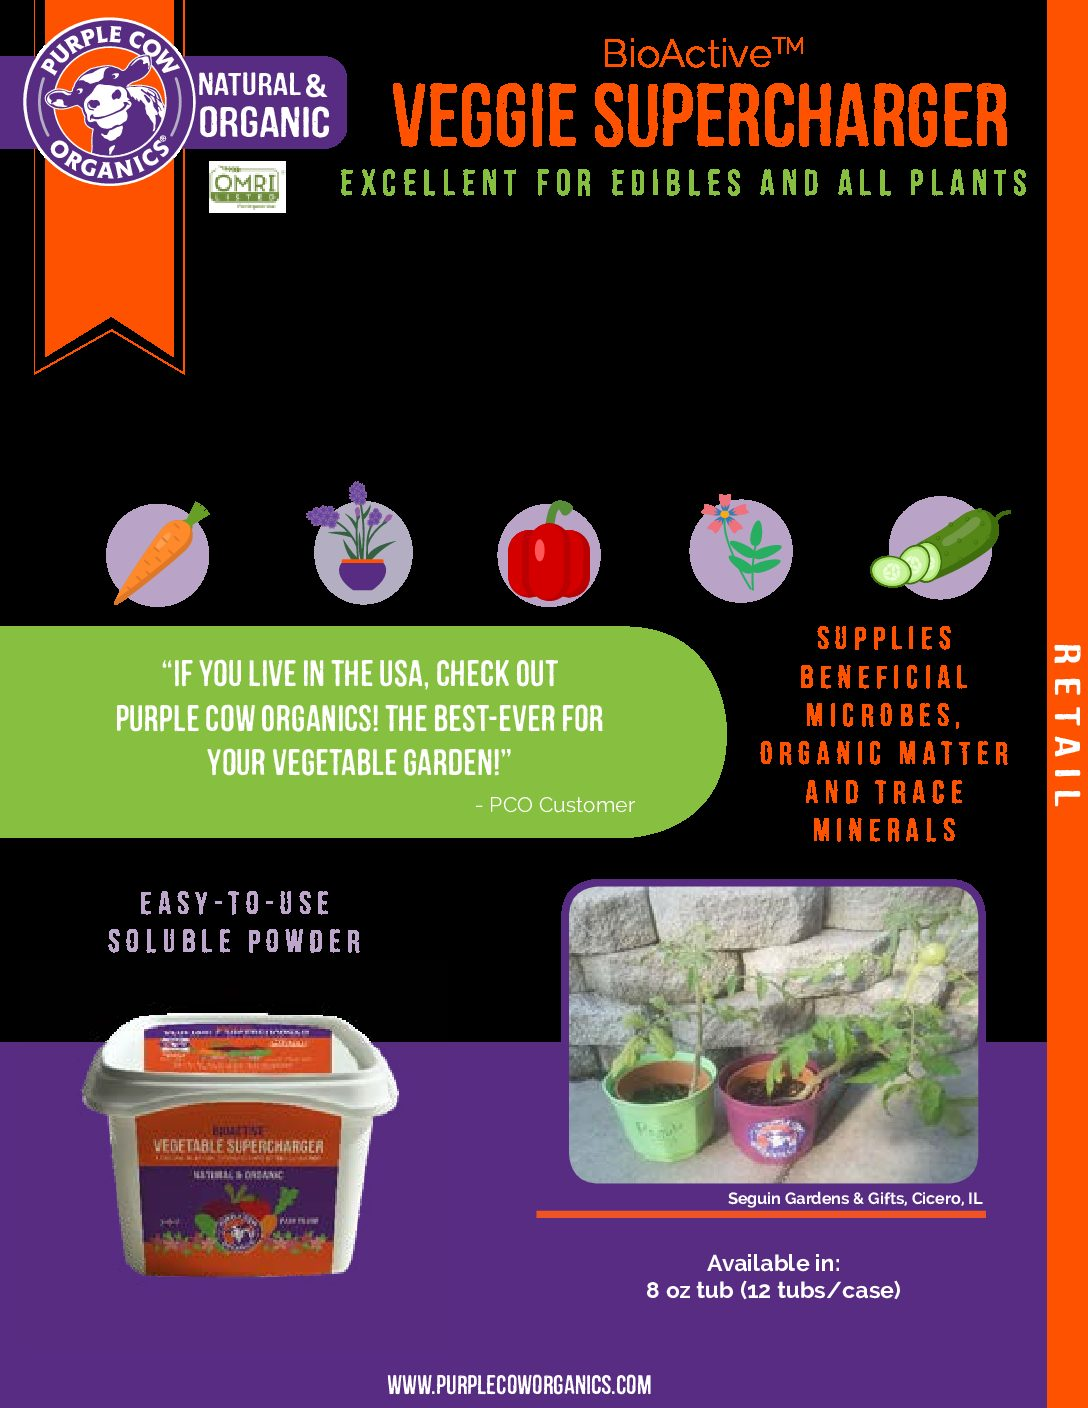 Garlic Complete Organic Fertilization Package - Vegetable Supercharger, All Purpose & CX1